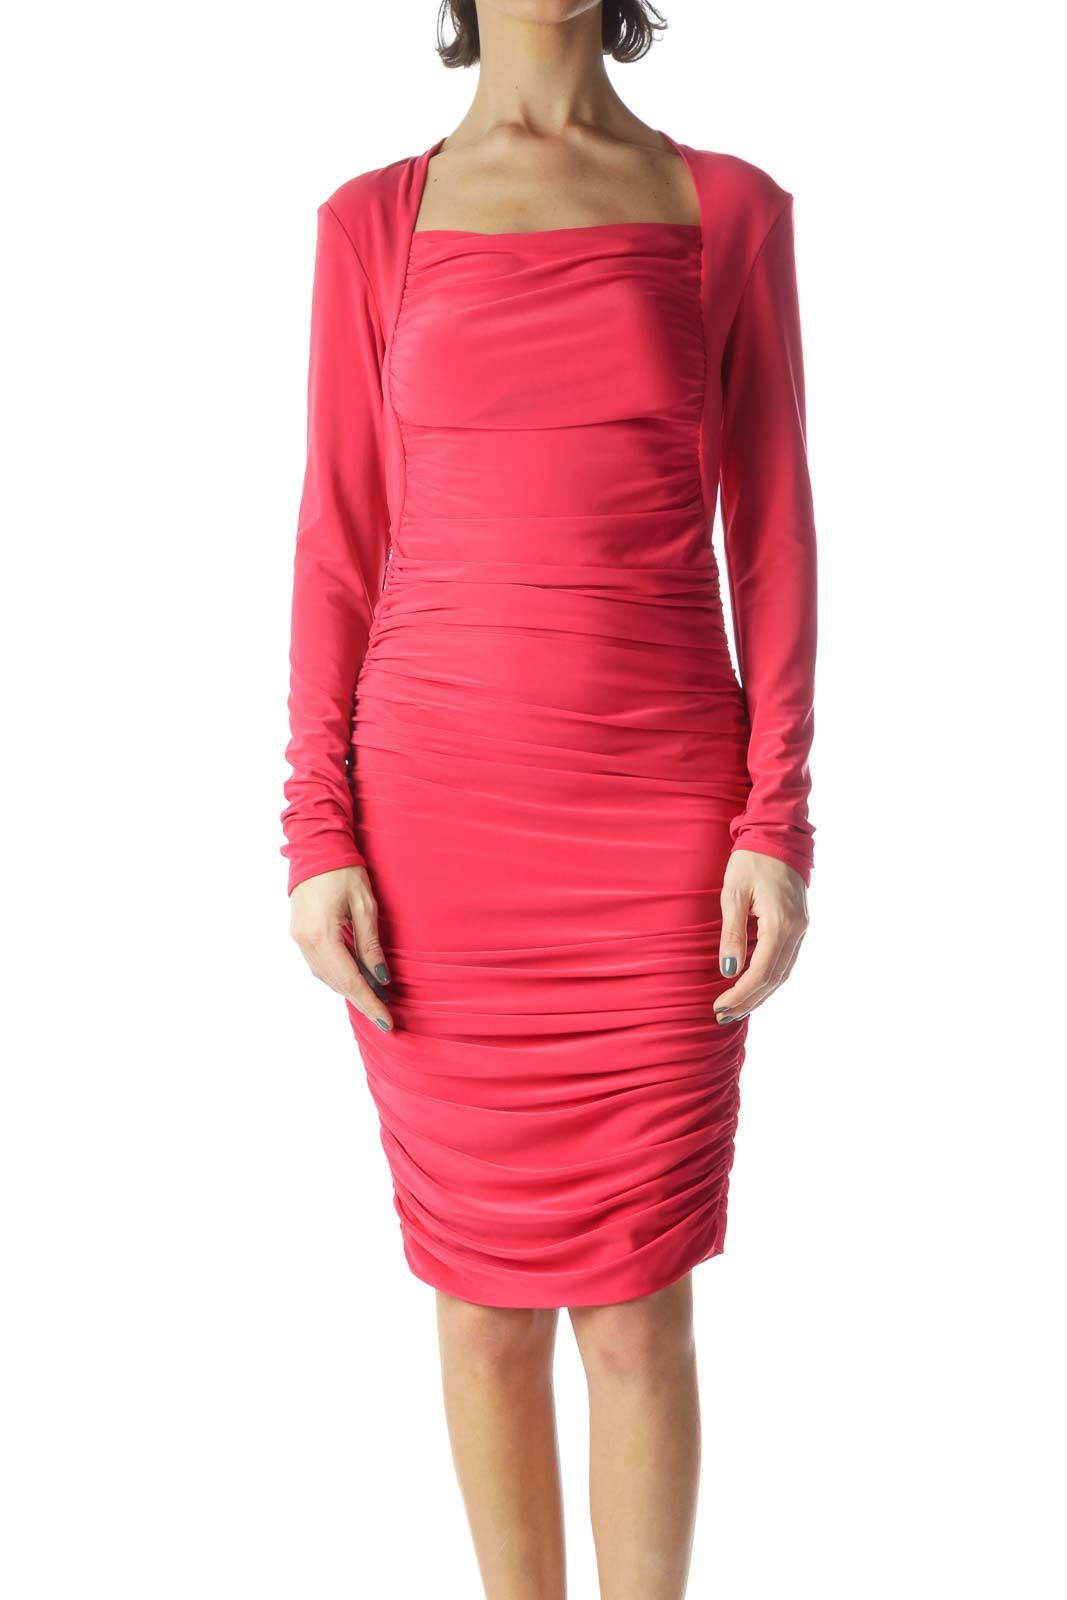 Pink Scrunched Slim Body Evening Dress